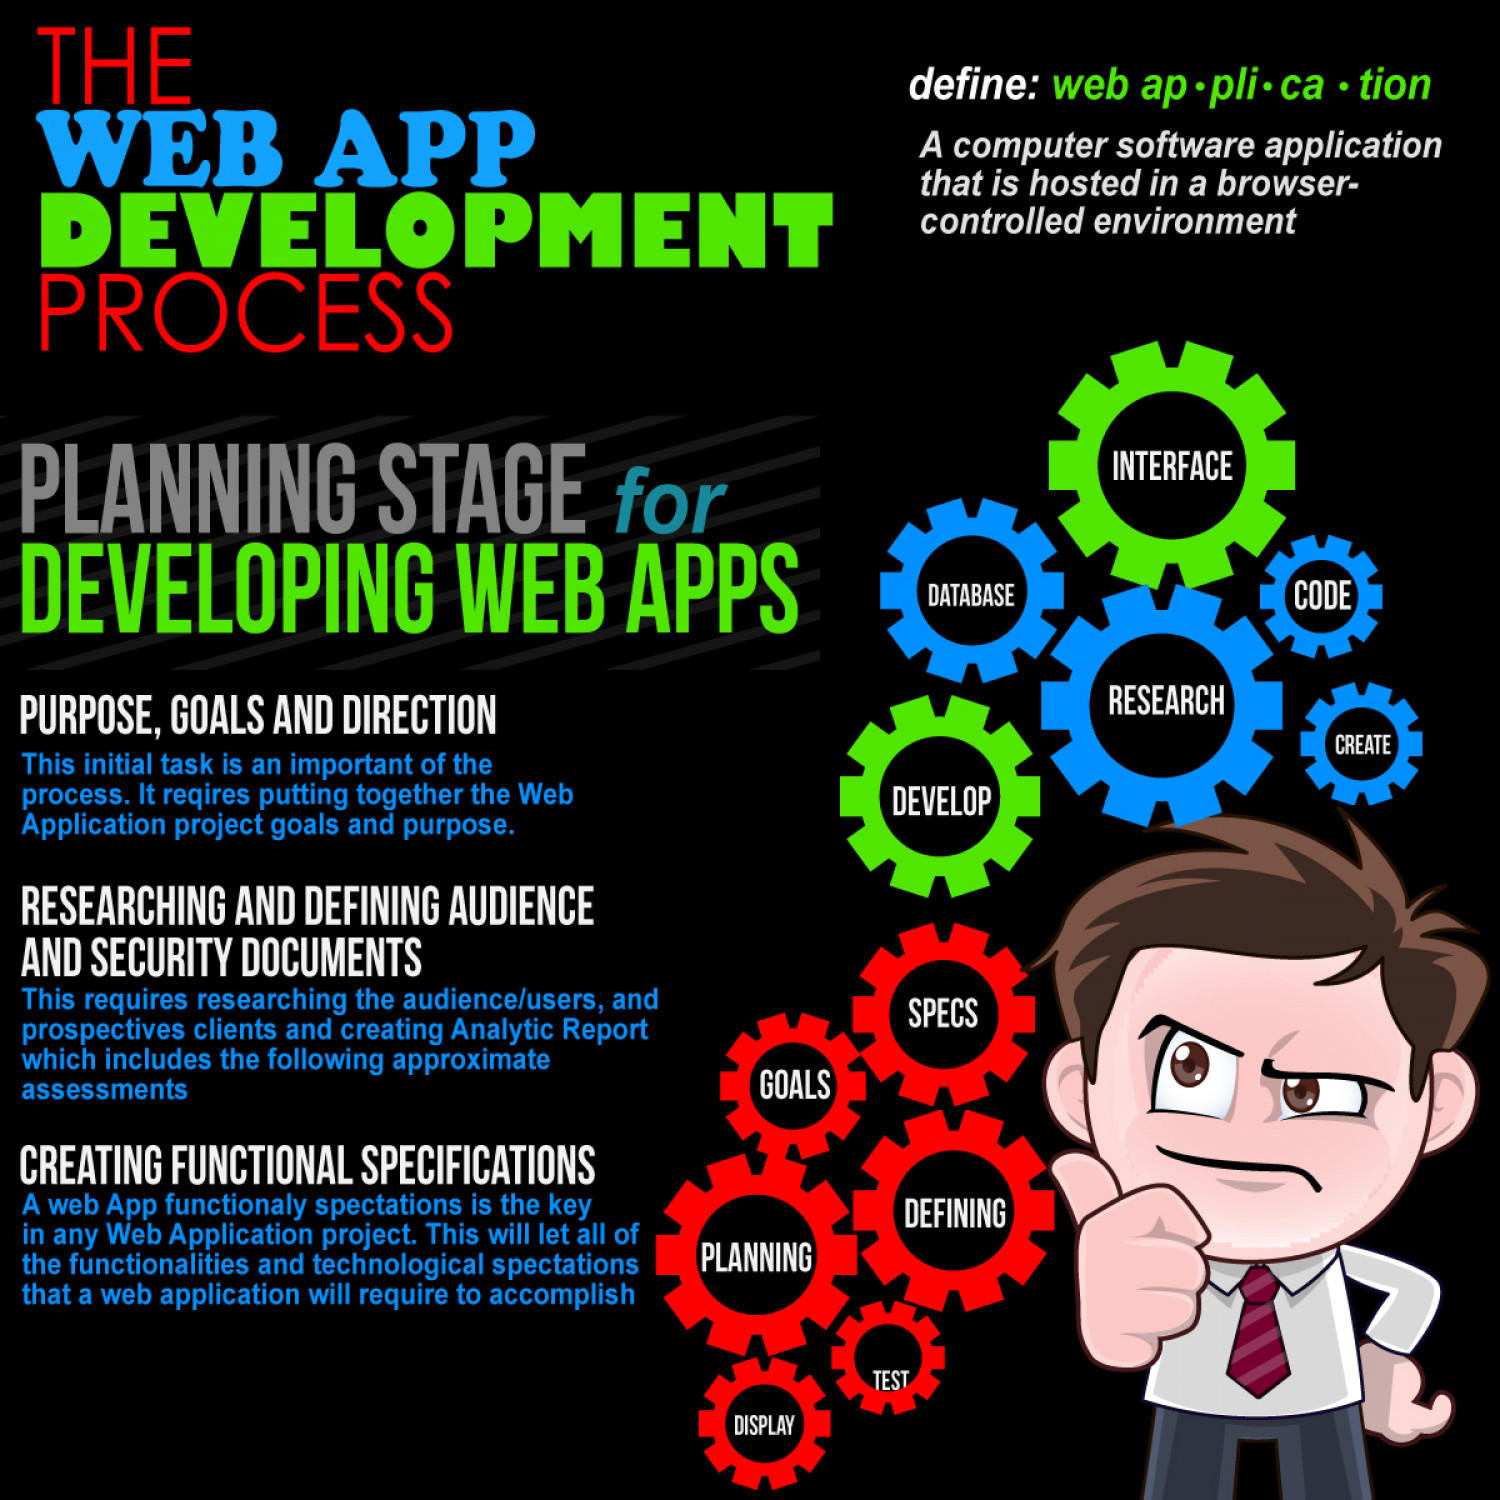 The Web App Development Process Infographic